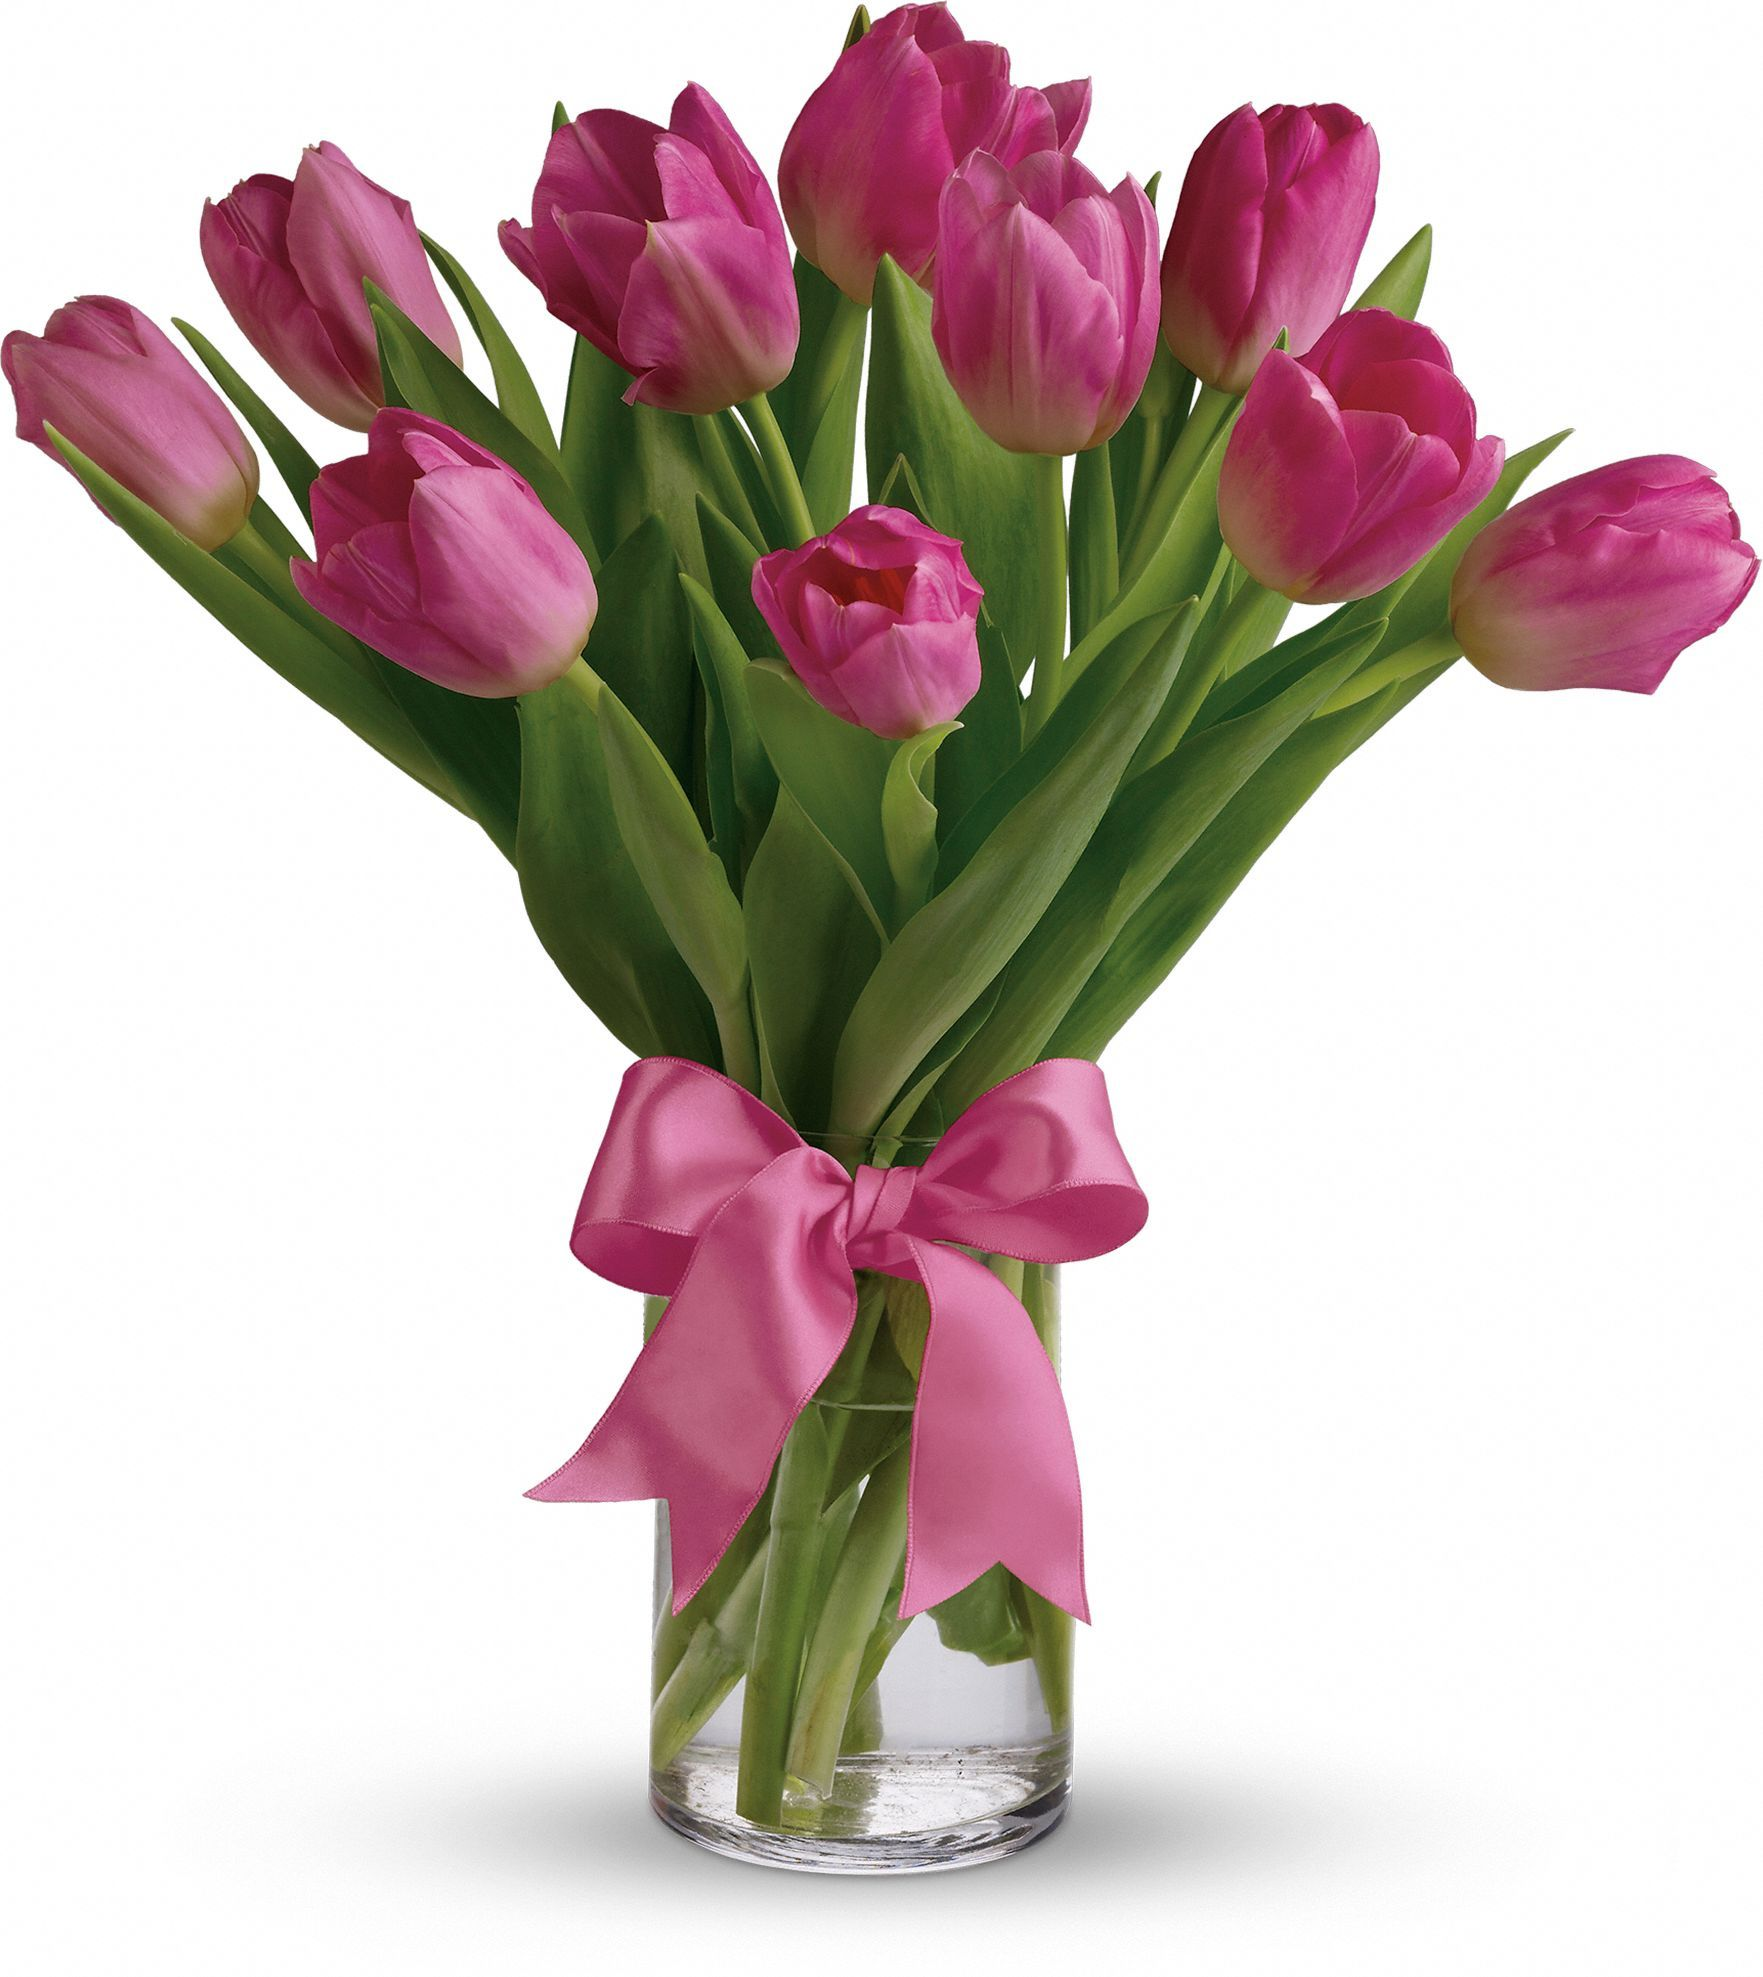 Buy Flowers Online For Every Occasion Pink Tulips Bouquet Tulip Bouquet Tulips Flowers